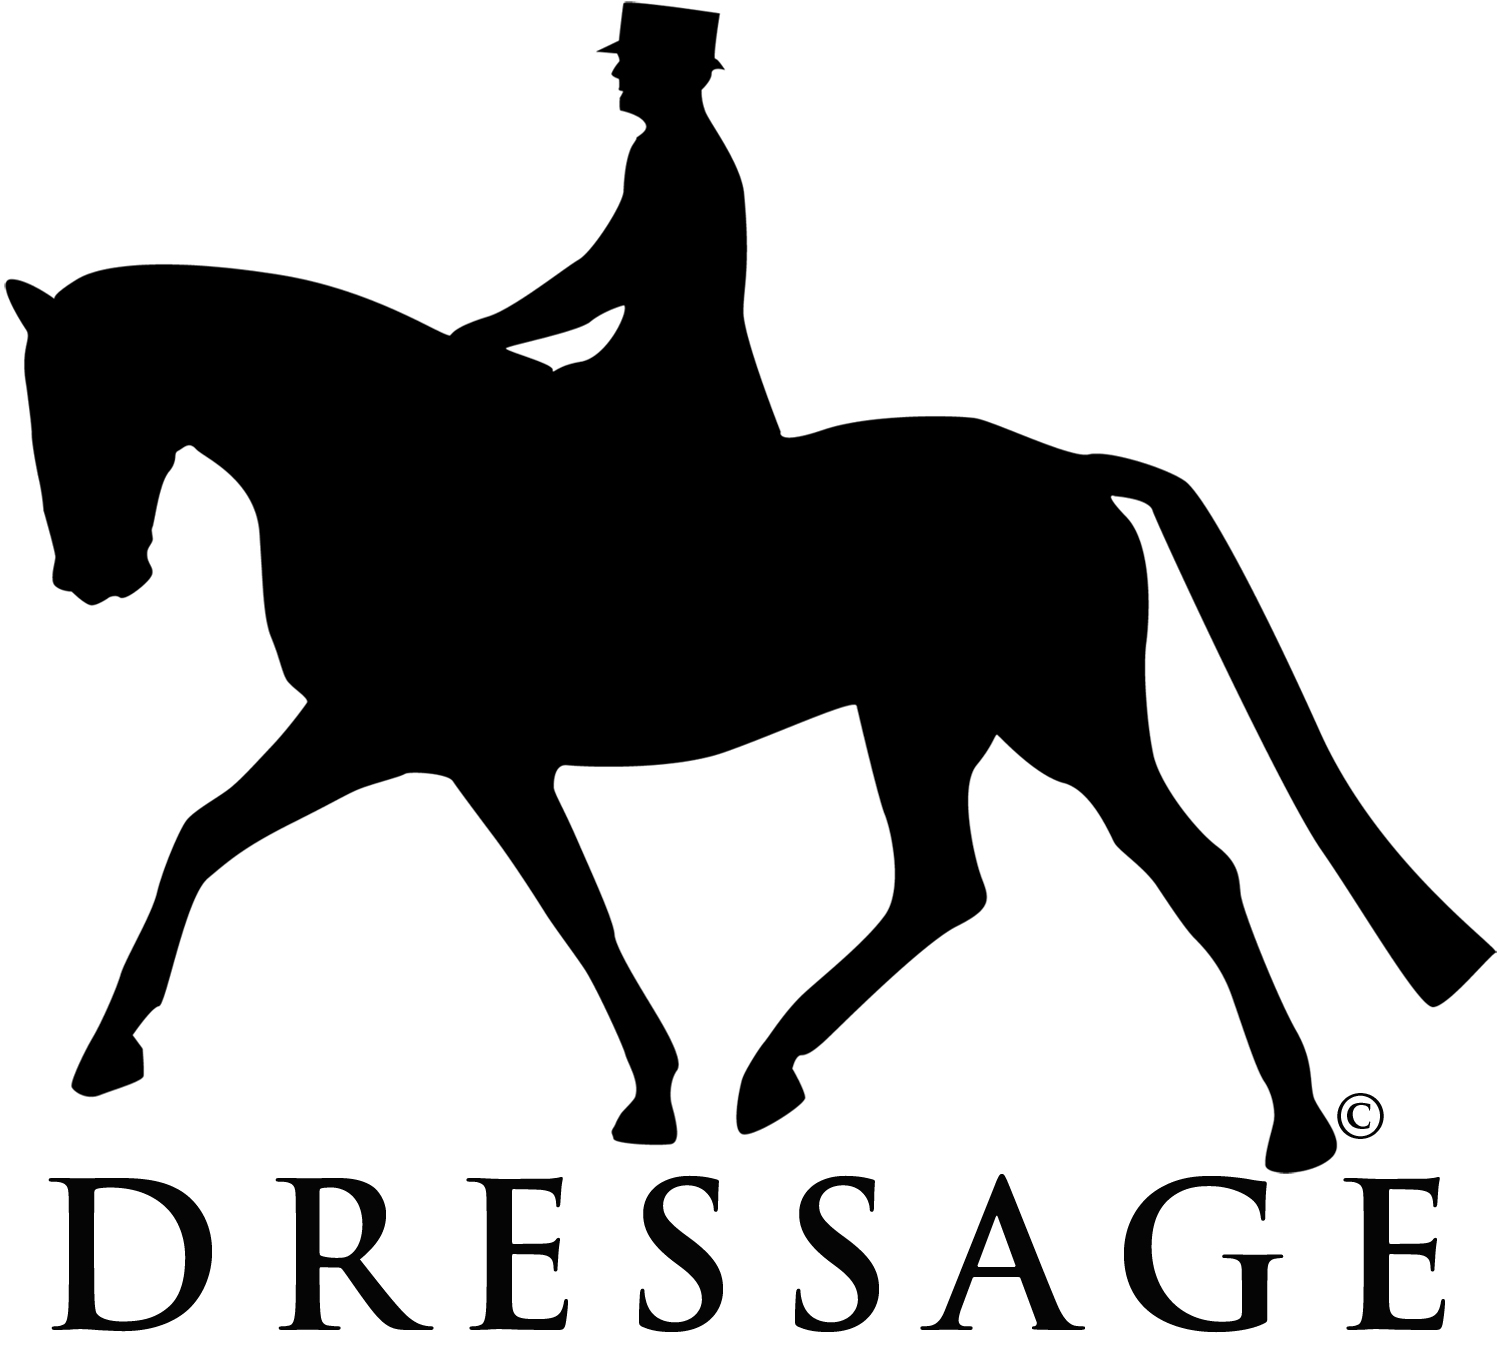 clip art dressage horse - photo #2